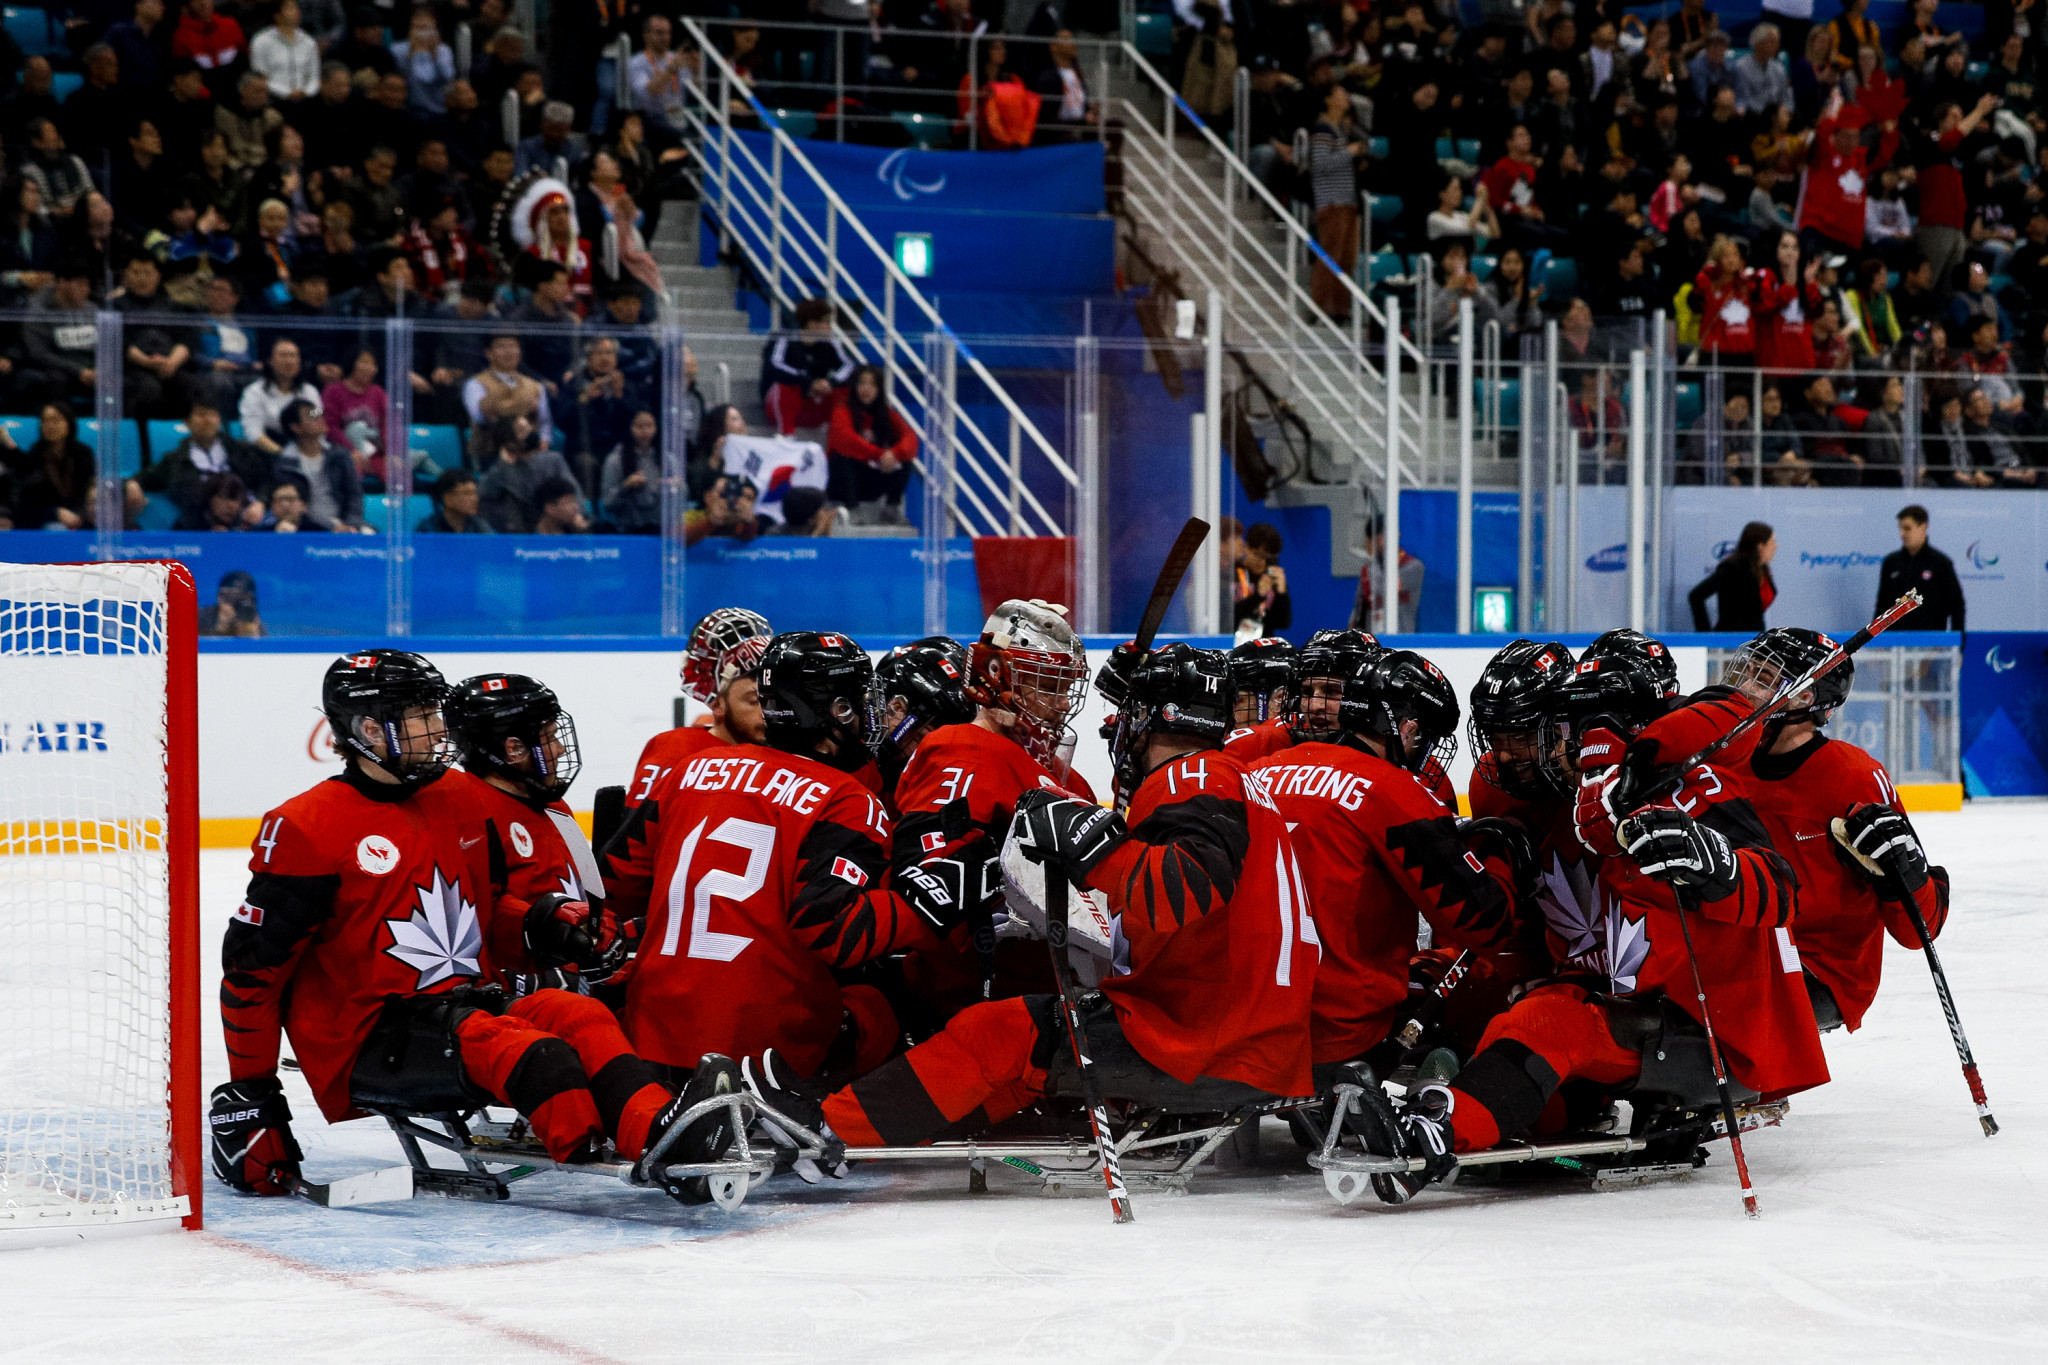 Canada and United States to meet in Pyeongchang 2018 Para-ice hockey final